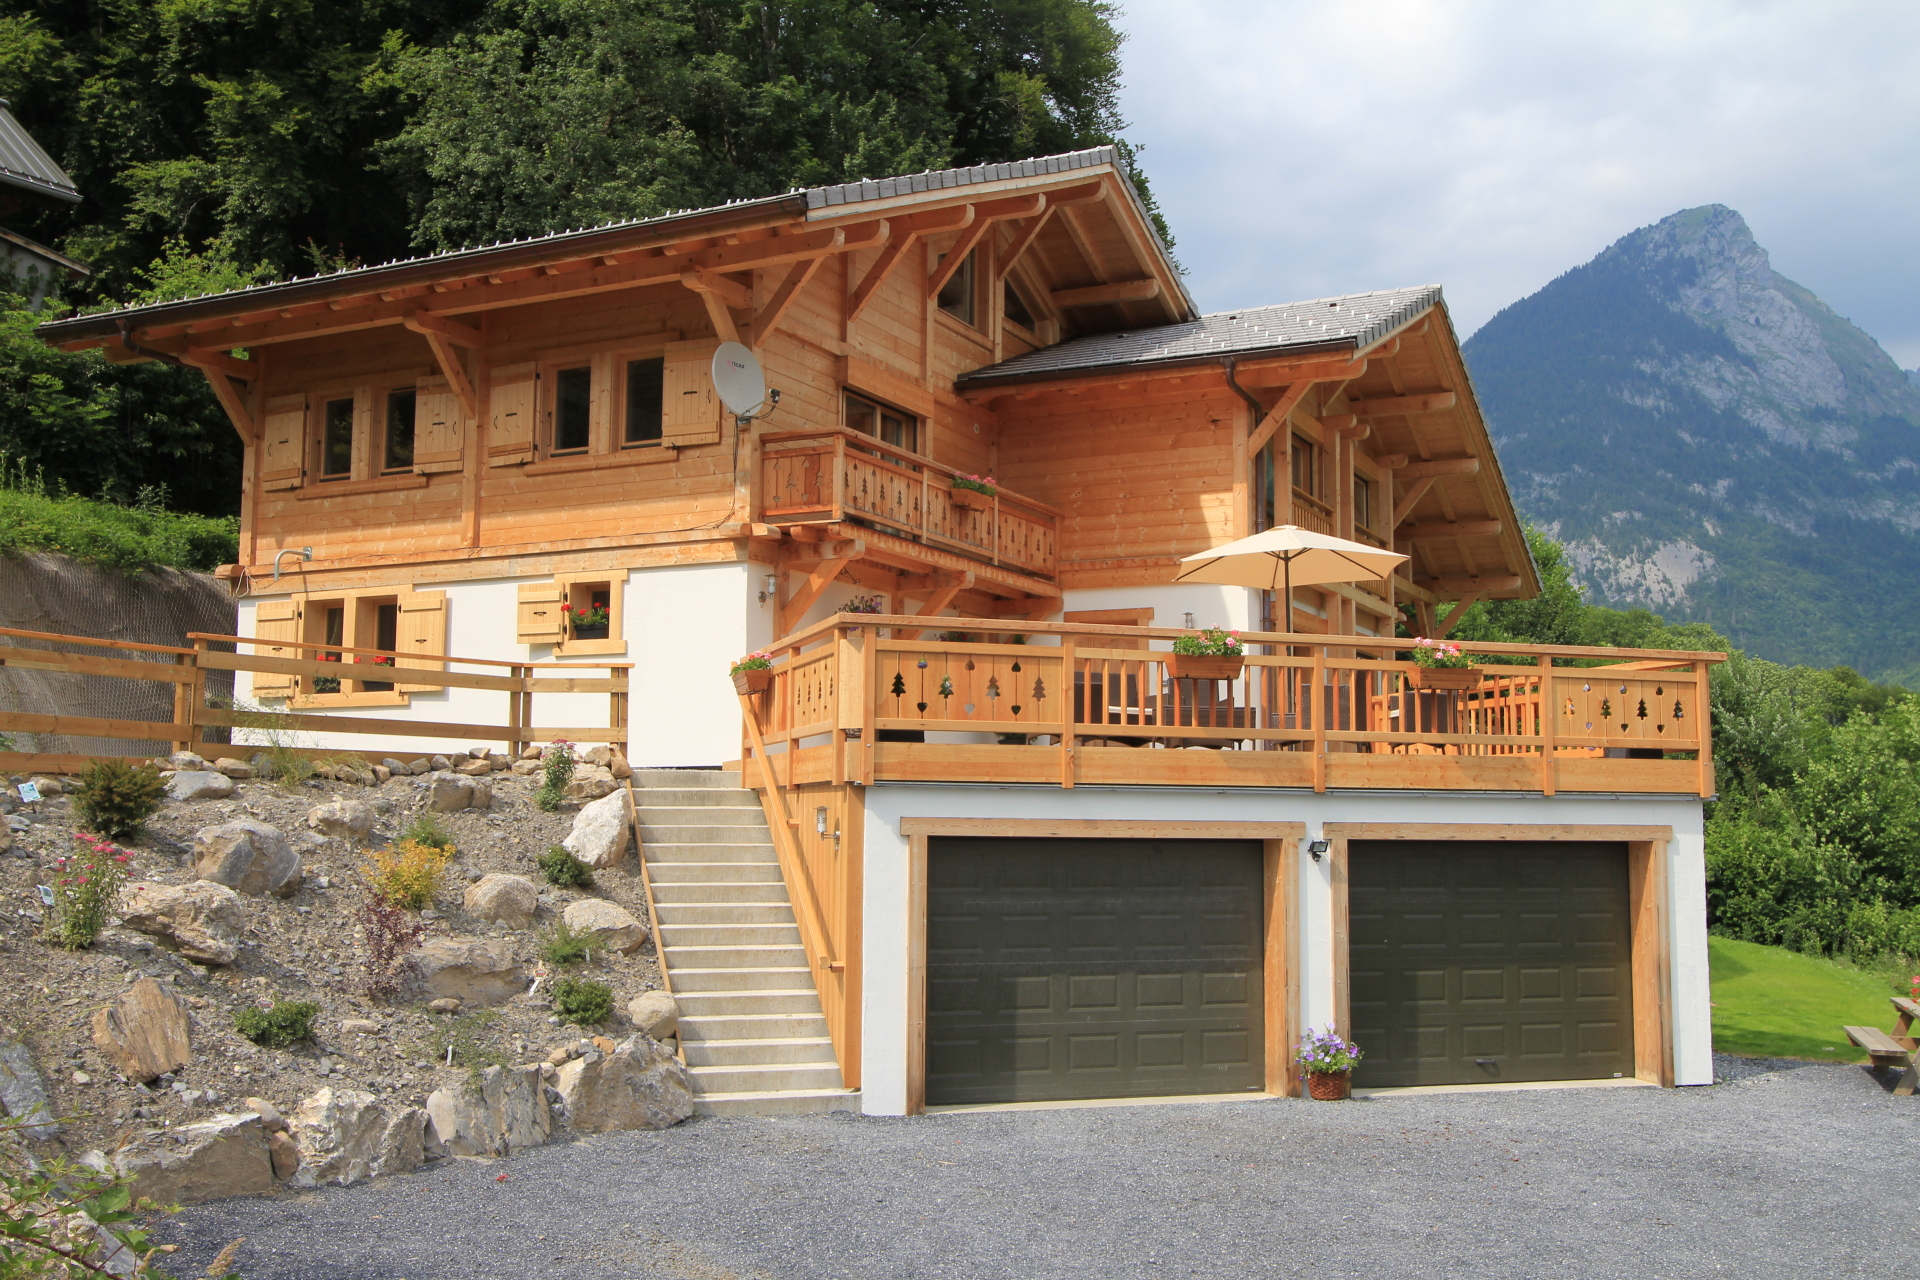 New terrace, balconies & landscaping transformed this chalet | Renovation Solutions